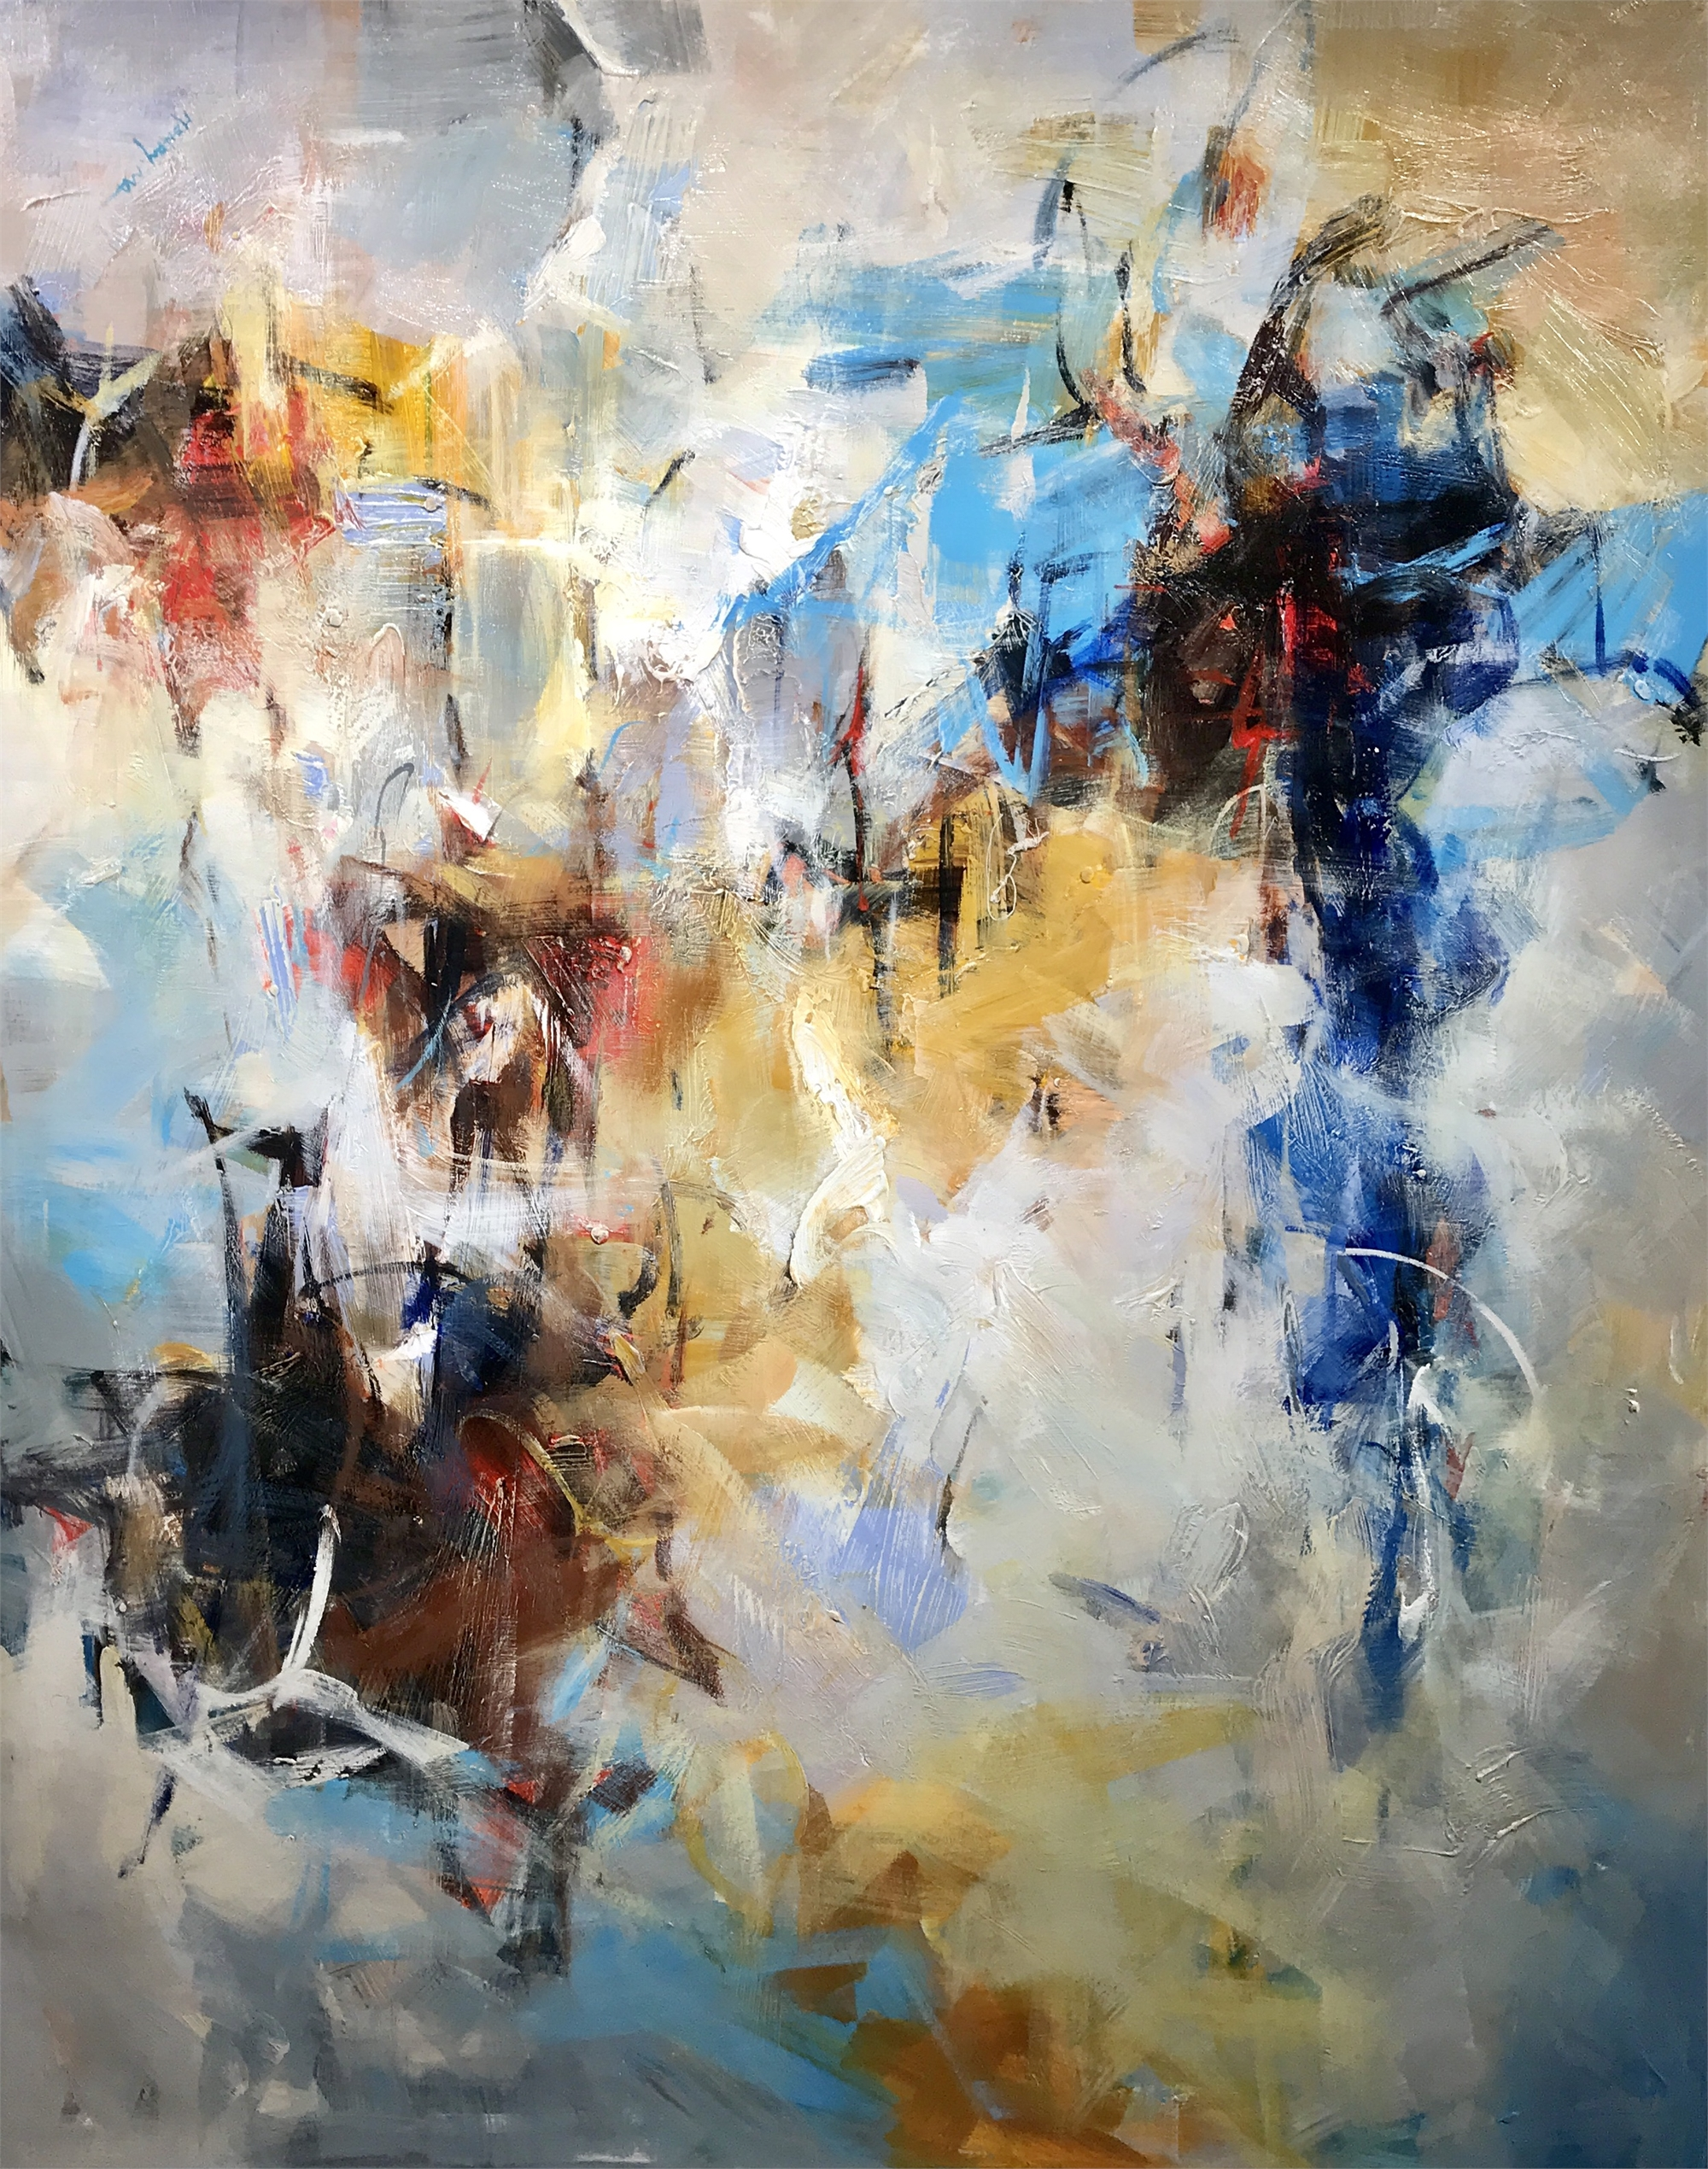 ABSTRACT BLUES BUTTERSCOTCH CENTER by Henry Ma